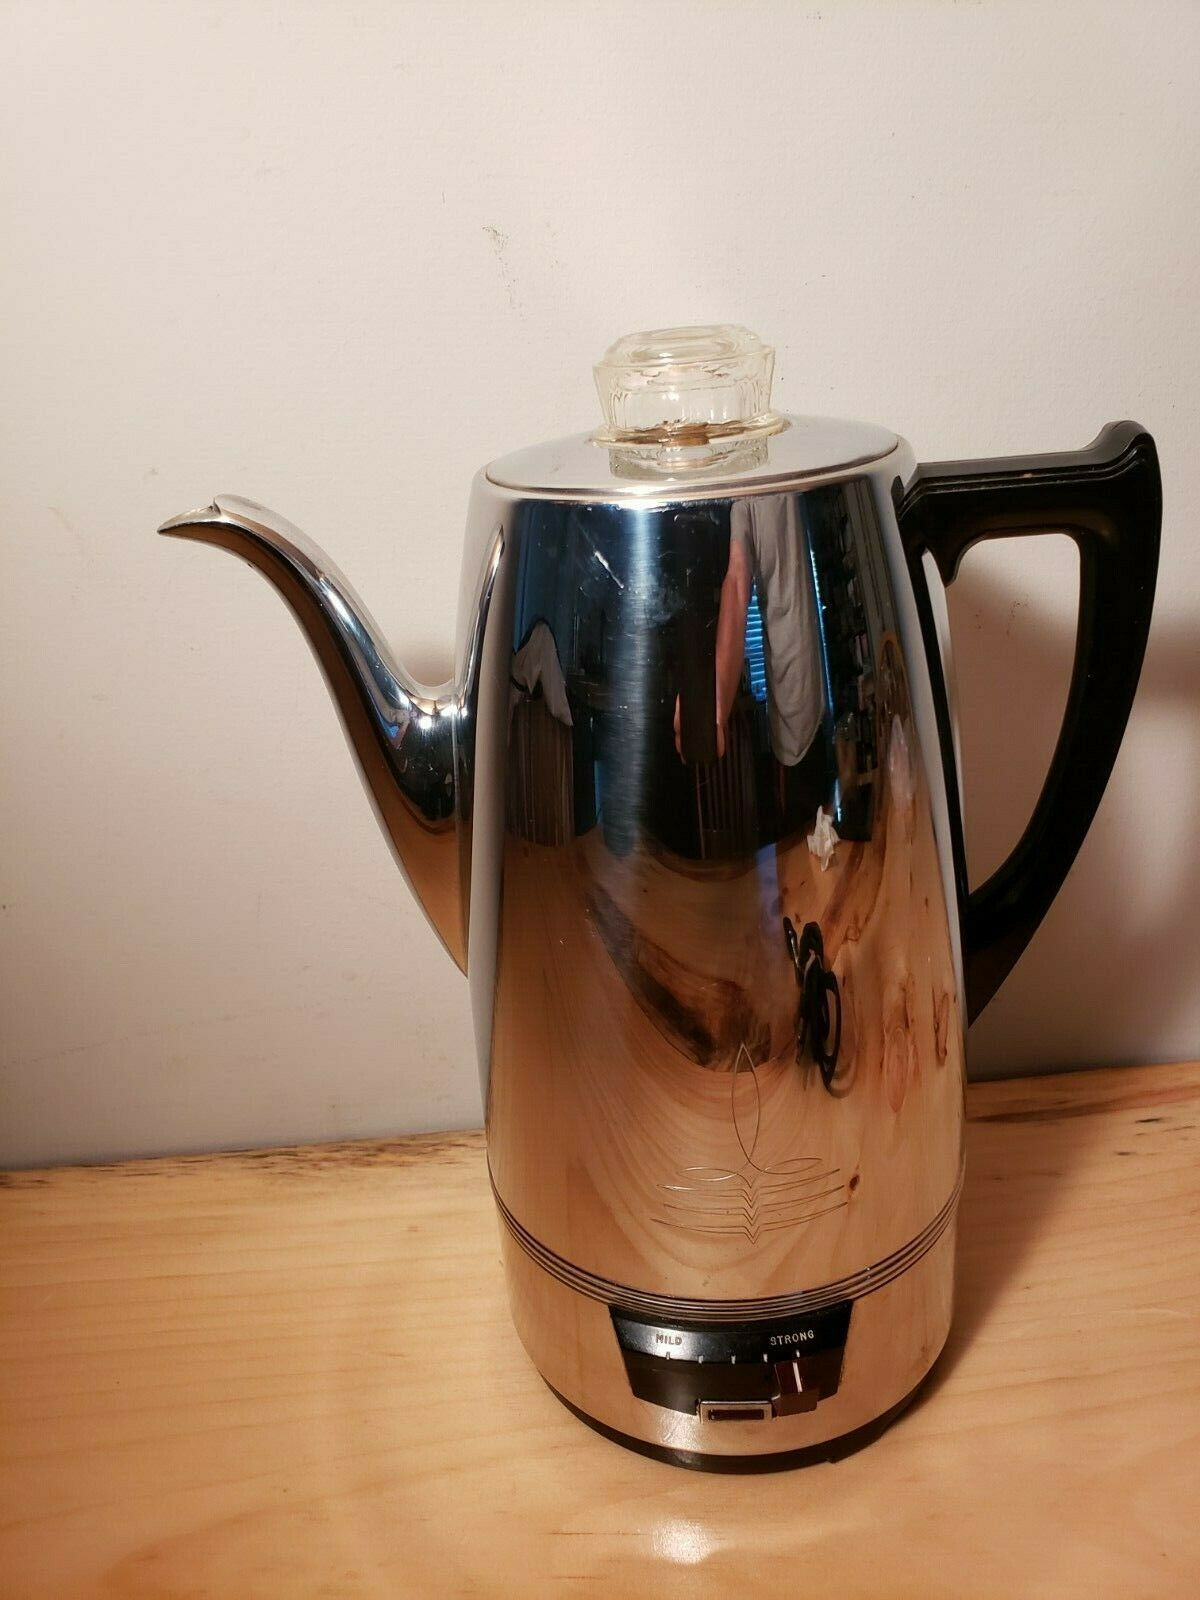 Details about Vintage RARE CoffeeMatic 4 cup electric